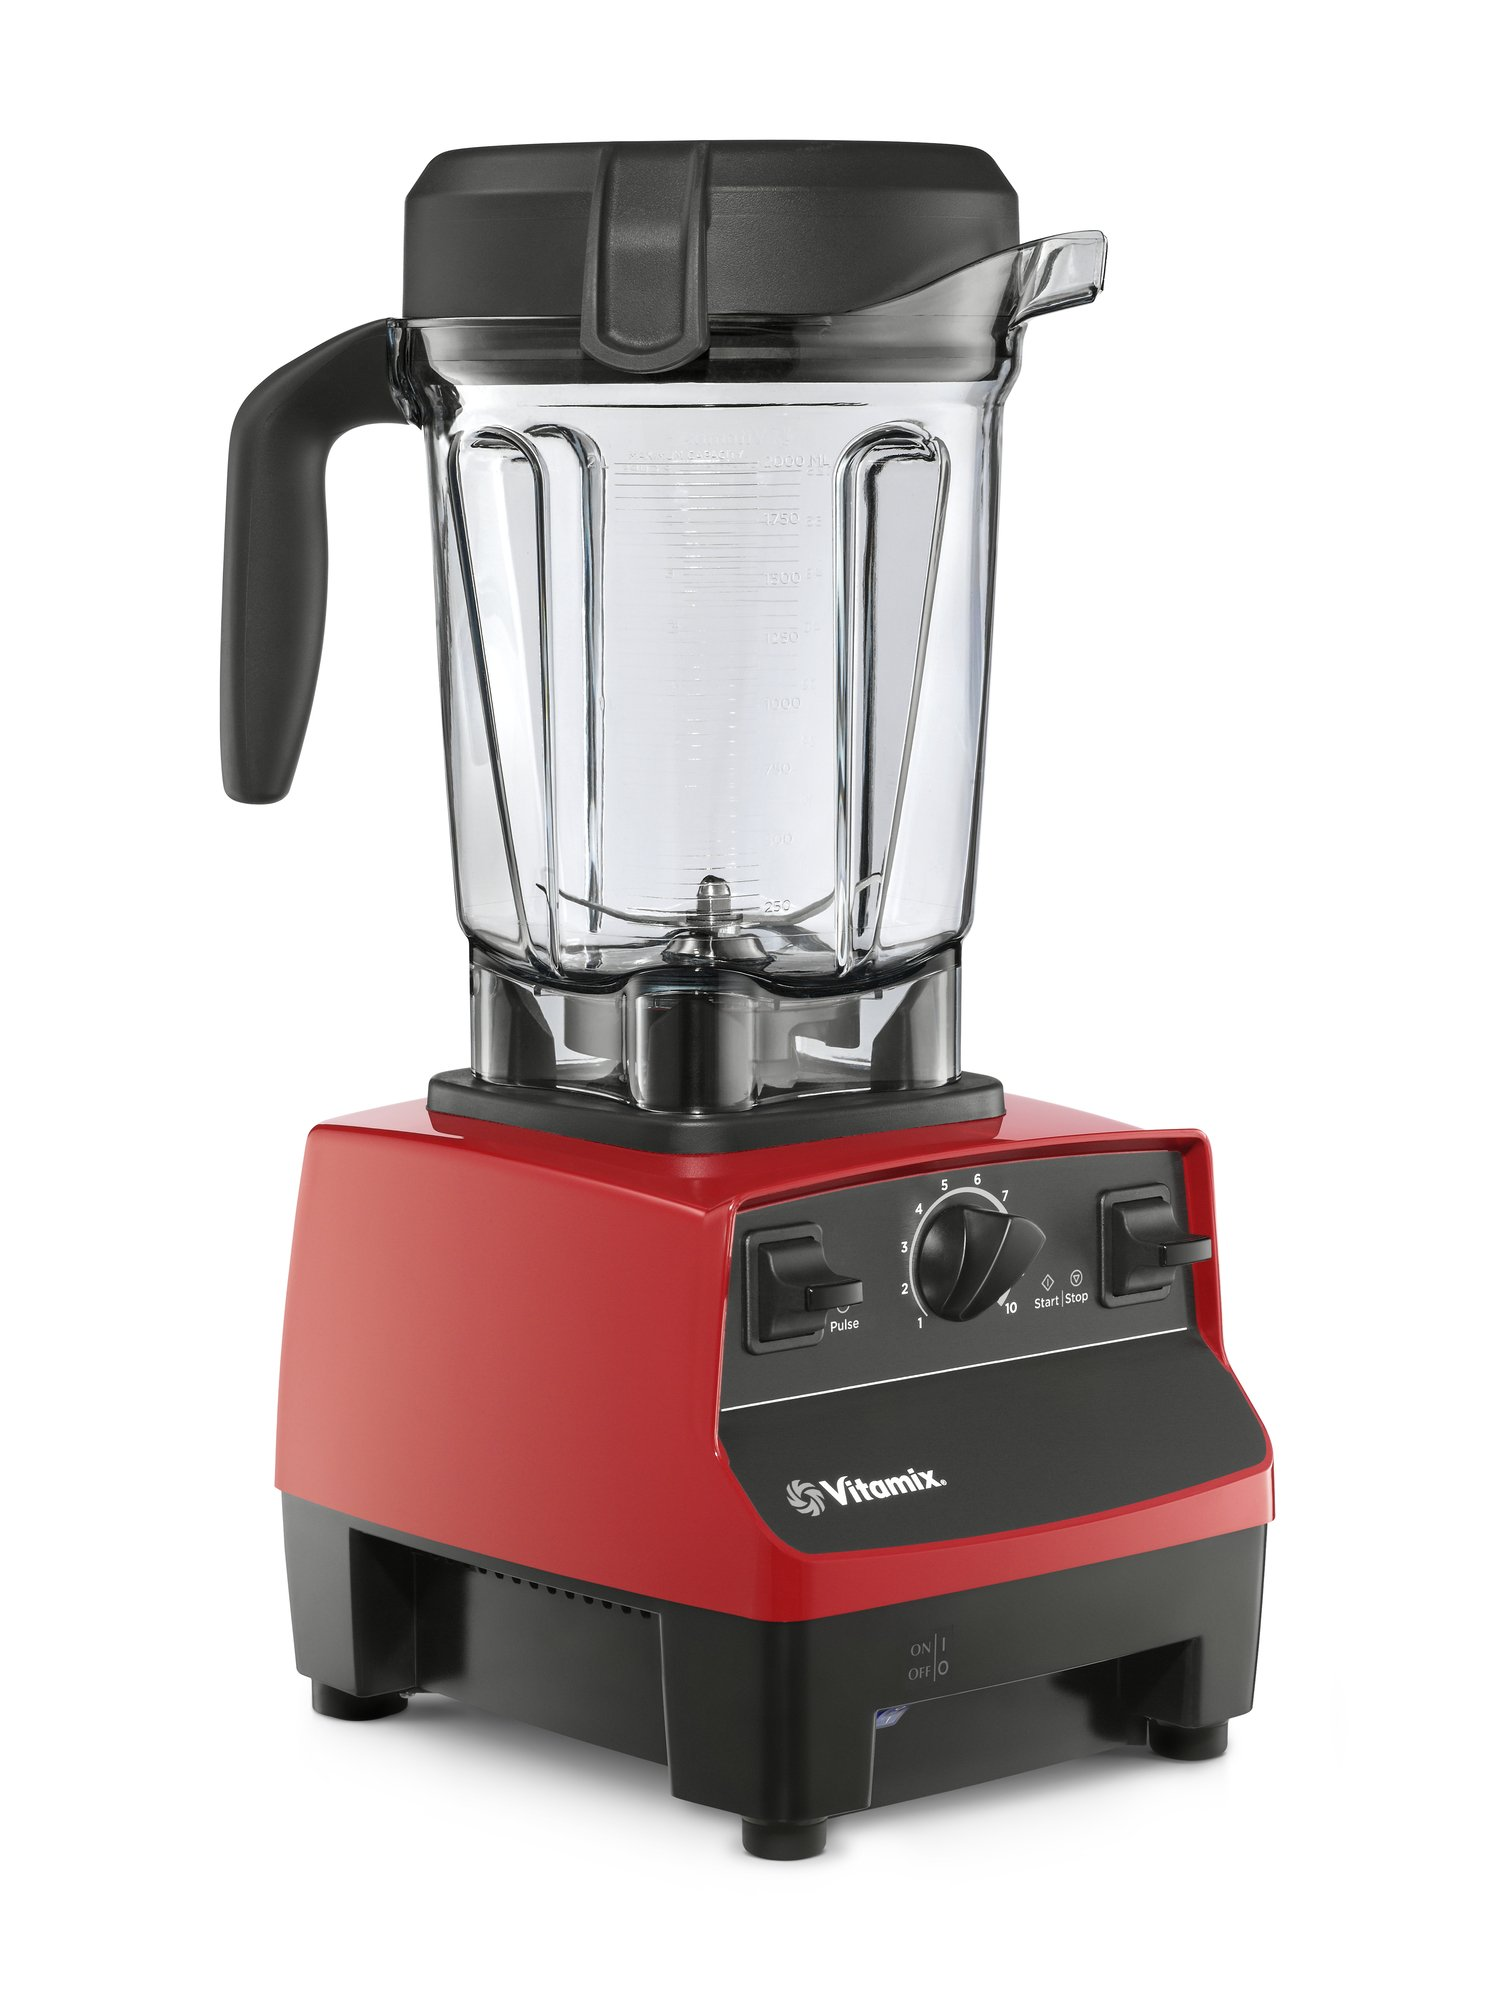 Vitamix 5300 Blender, Professional-Grade, 64 oz. Low-Profile Container, Red (Renewed) by Vitamix